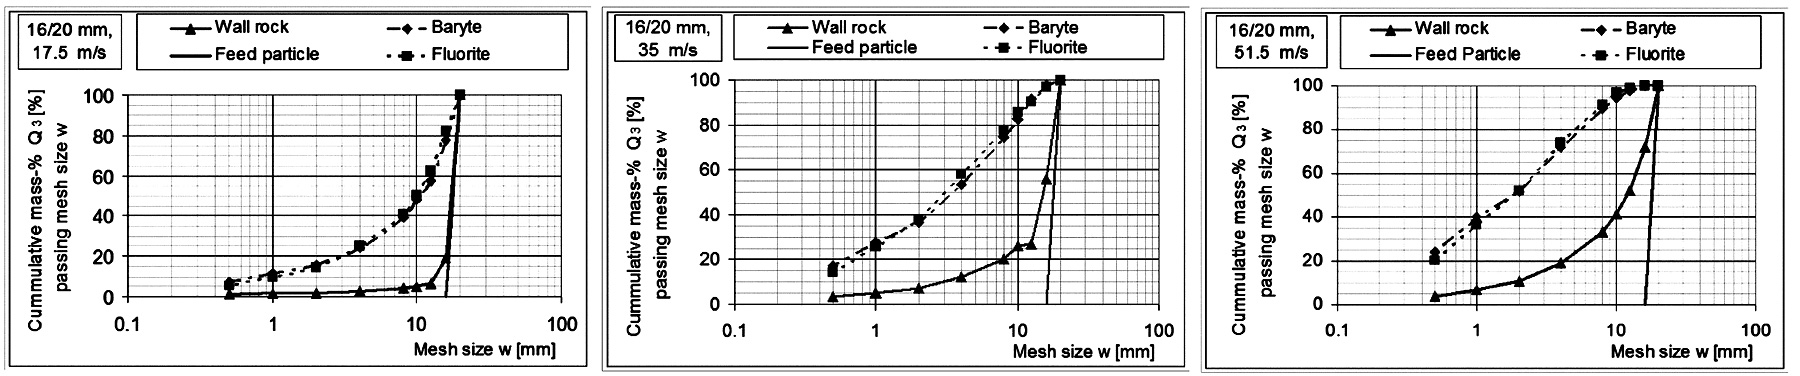 Fig. 3. Cumulative passing distribution of a Fluorite-Barite-ore with feed size 16/20 mm after single-particle comminution at various speeds (left: 17.5 m/s, middle: 35 m/s, right: 51.5 m/s) (4). // Bild 3. Summendurchgangsverteilung eines Fluorit-Baryt-Erzes mit einer Aufgabepartikelgröße 16/20 mm nach Einzelpartikelzerkleinerung bei verschiedenen Geschwindigkeiten (links: 17.5 m/s, Mitte: 35 m/s, rechts: 51.5 m/s) (4).